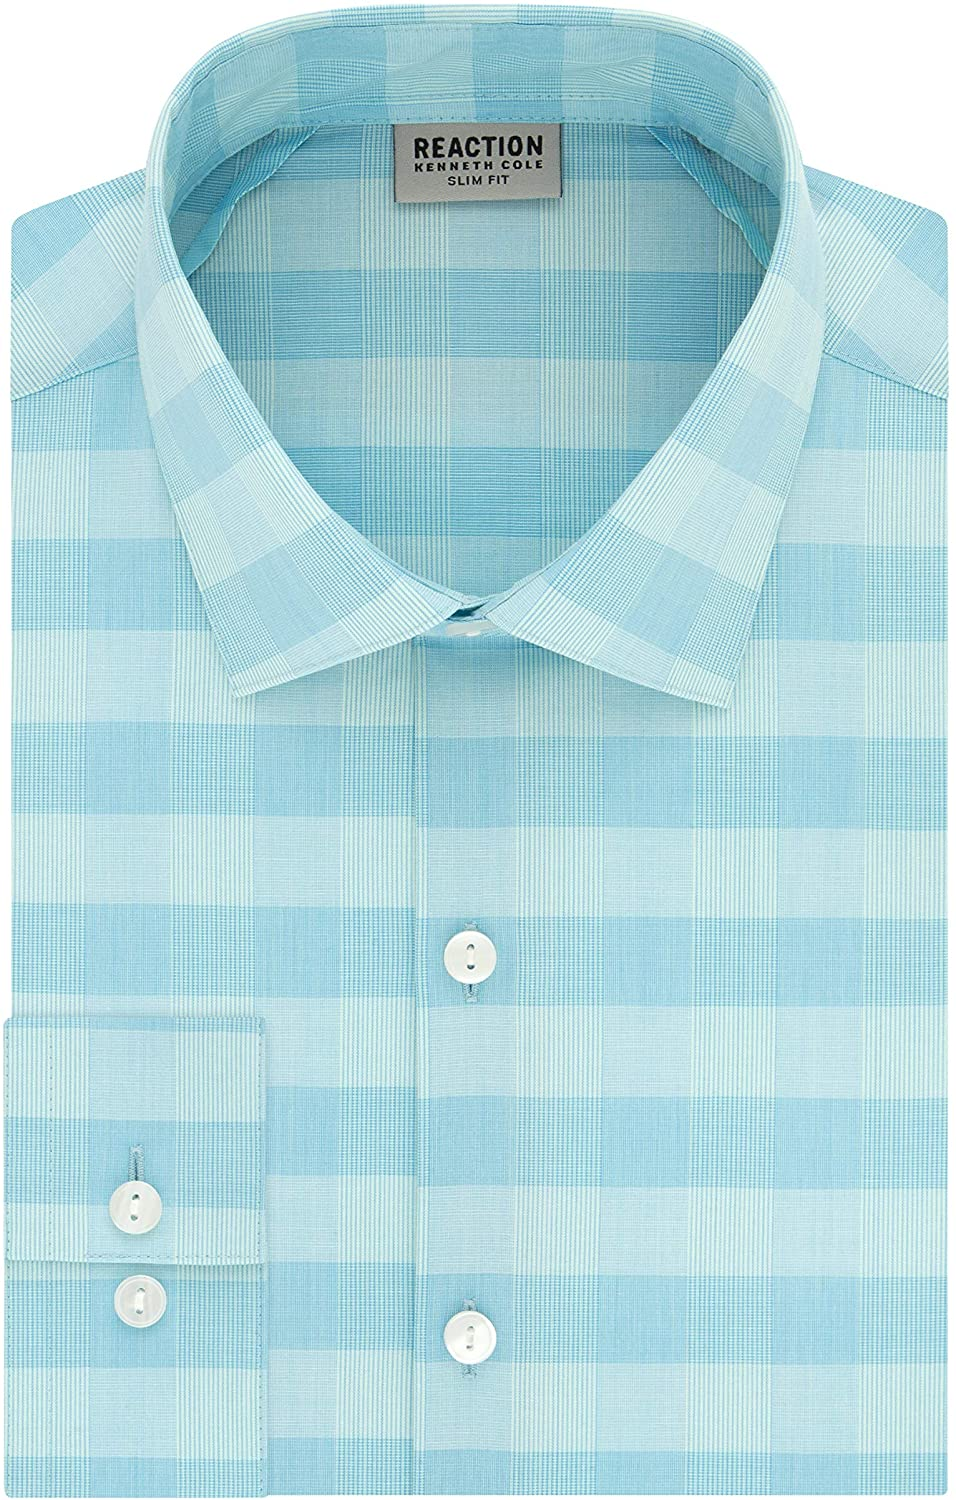 Kenneth Cole REACTION Slim Fit Check Dress Shirt